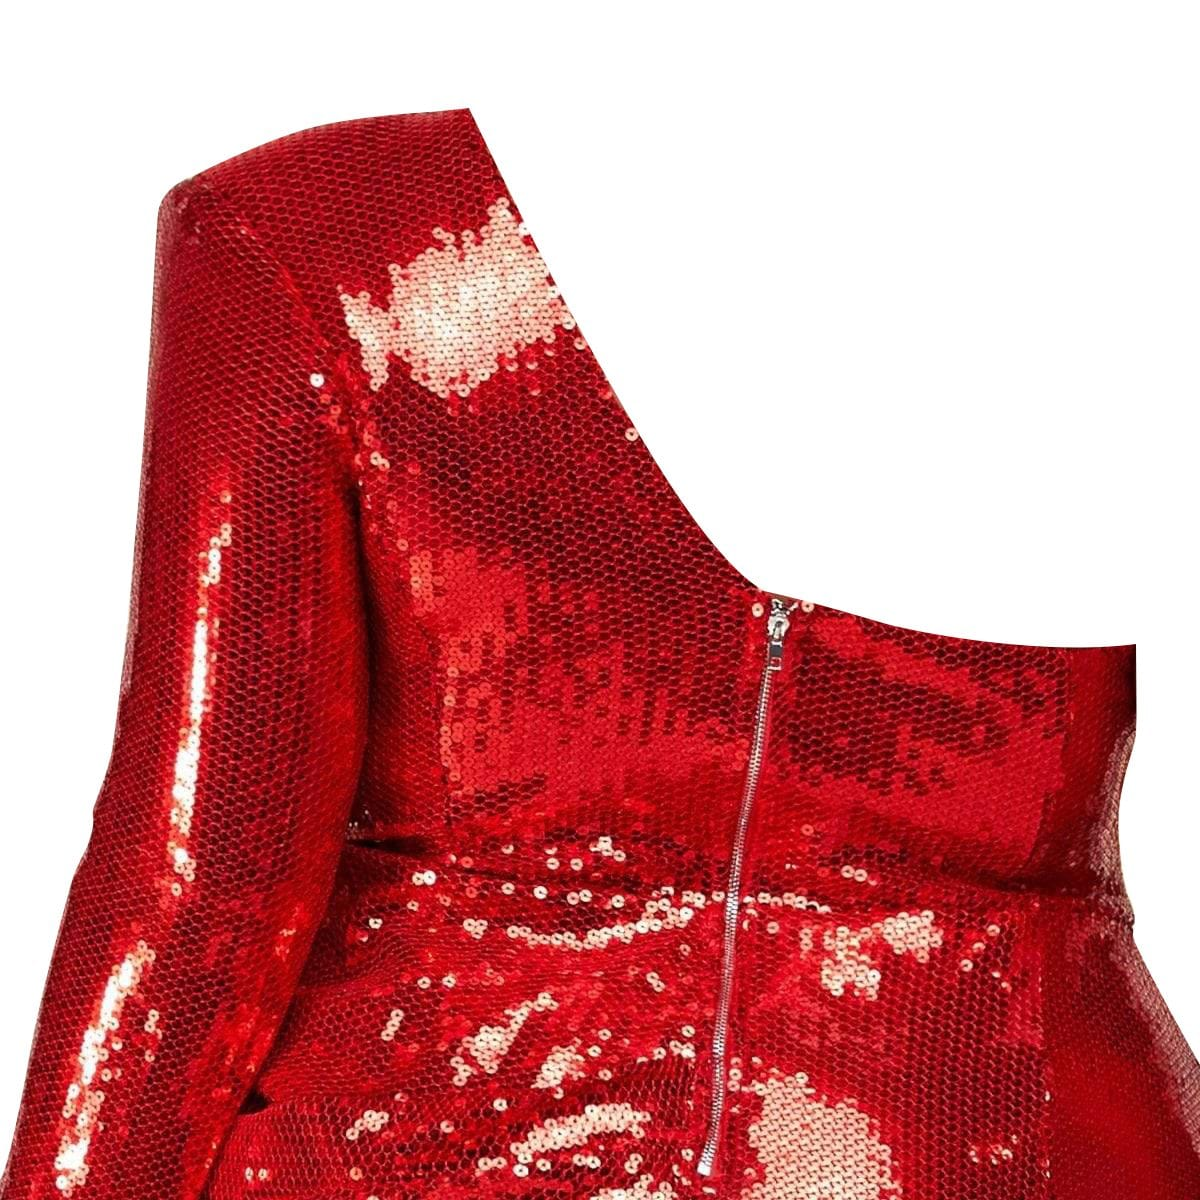 Passion Red Sequin Evening Dress - Posh Shoppe